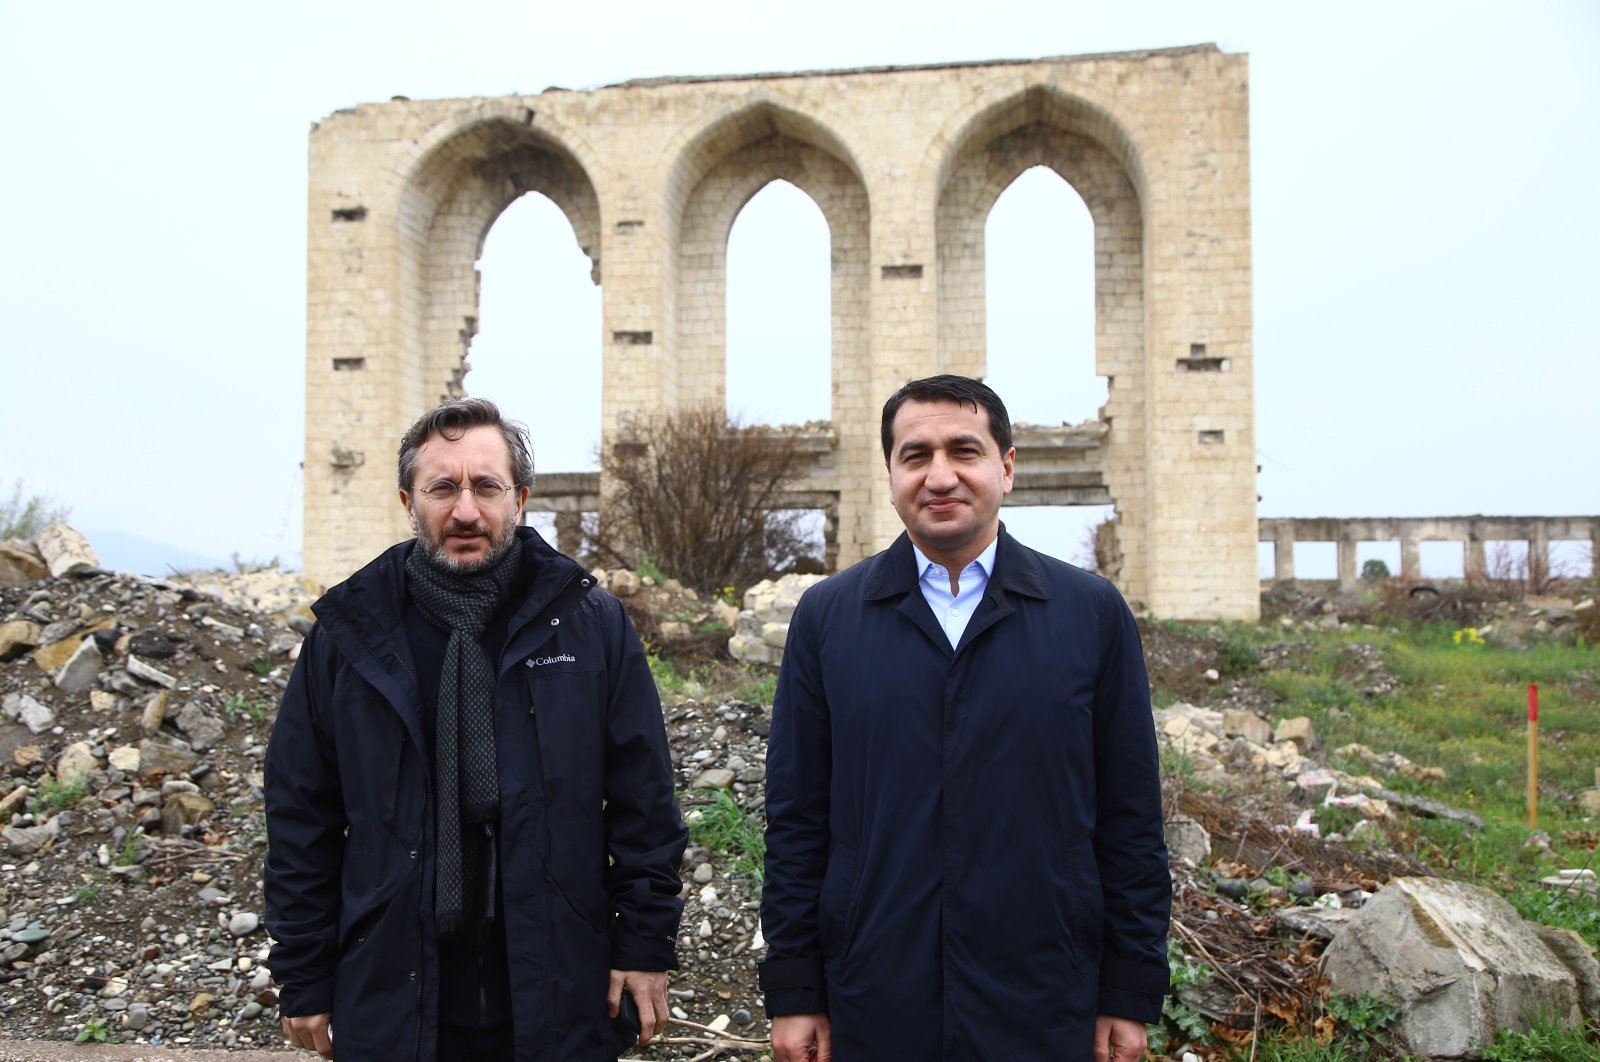 Presidential Communications Director Fahrettin Altun (L) and Azerbaijani Vice President Hikmet Haciyev pose for a picture during a visit to the city of Aghdam in Azerbaijan, April 11, 2021. (AA)